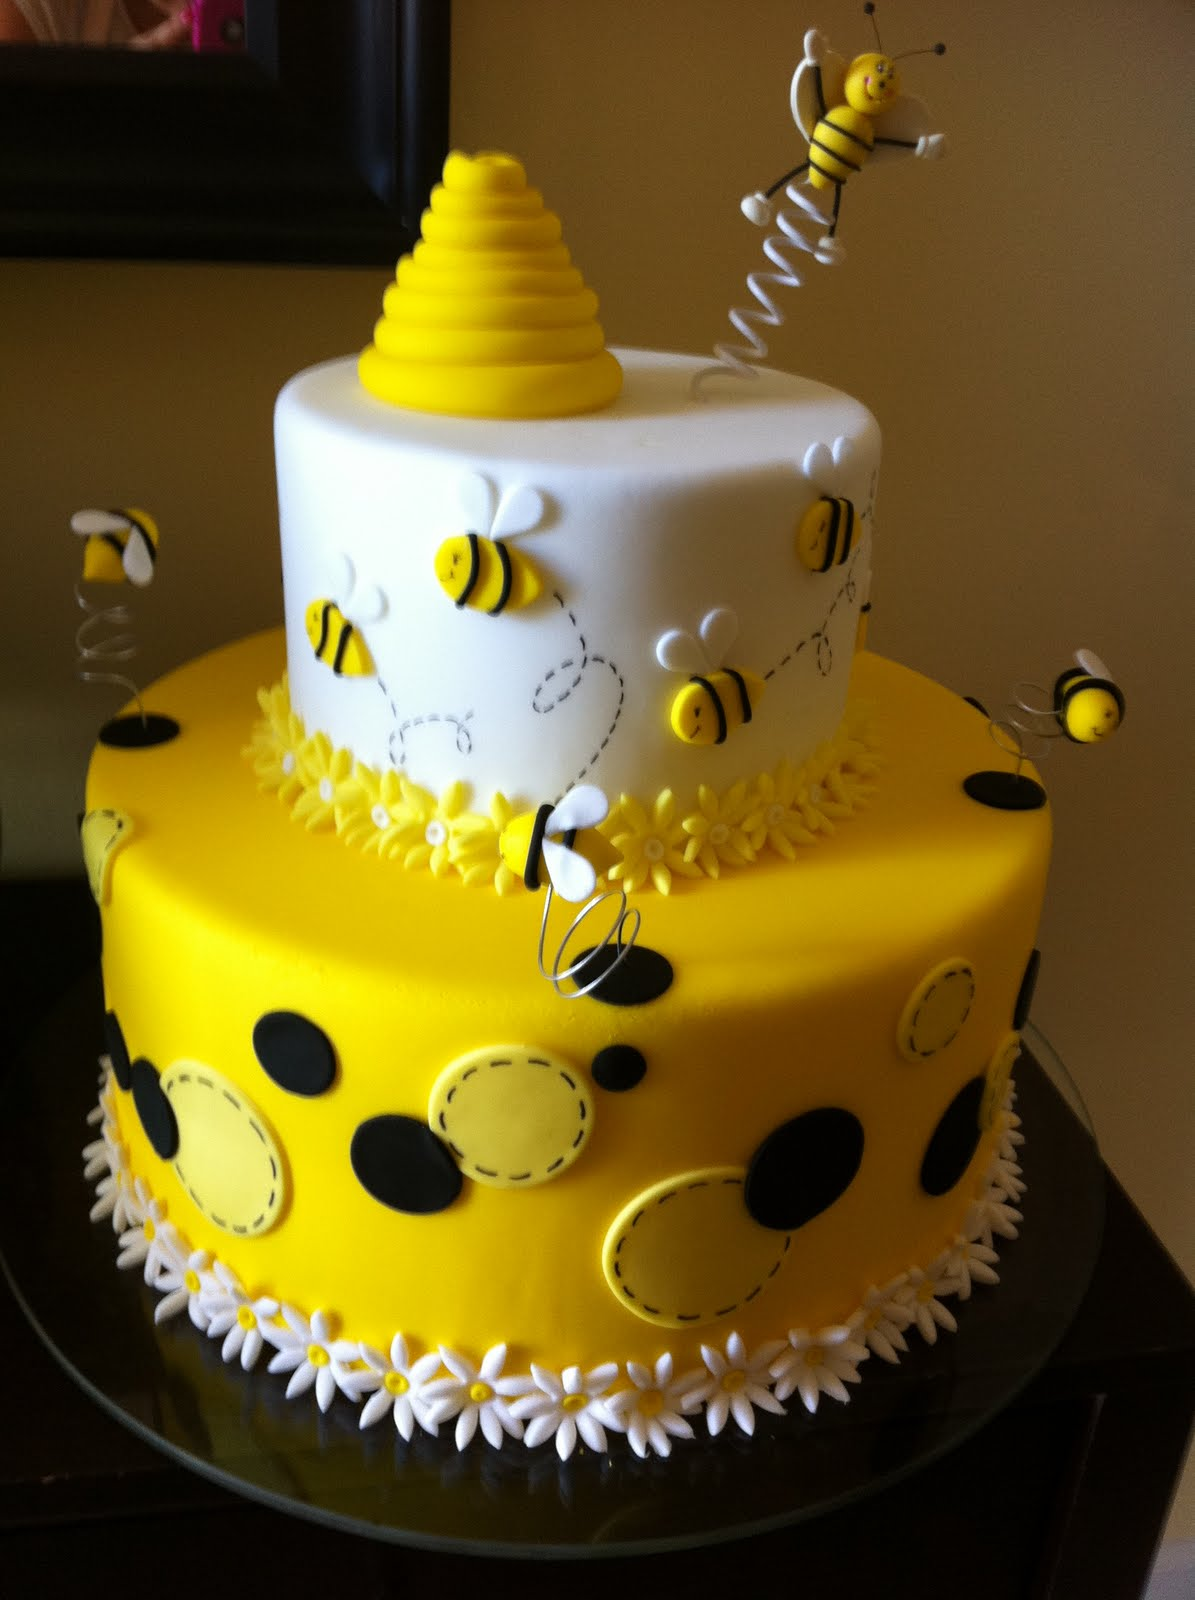 Bumble Bee Cakes - Decoration Ideas | Little Birthday Cakes